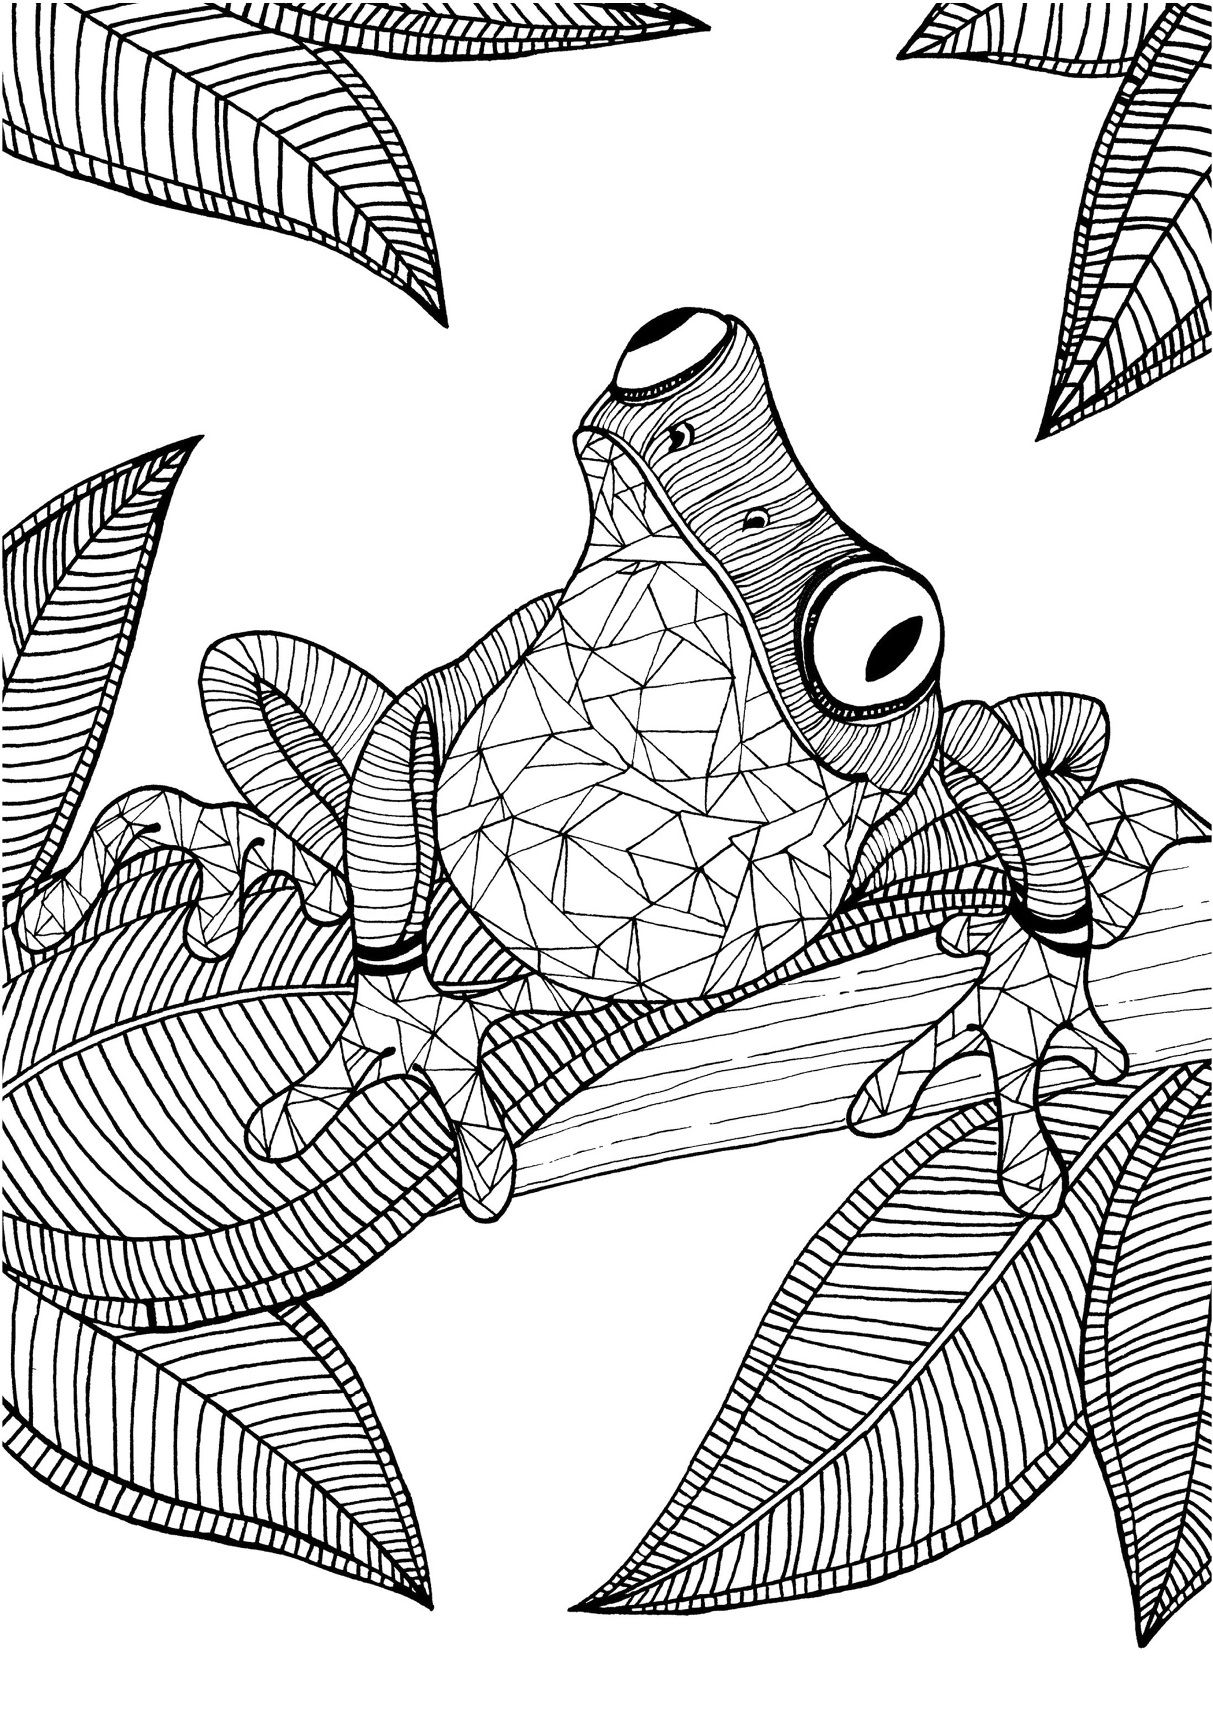 Frog adult colouring page Colouring In Sheets Art